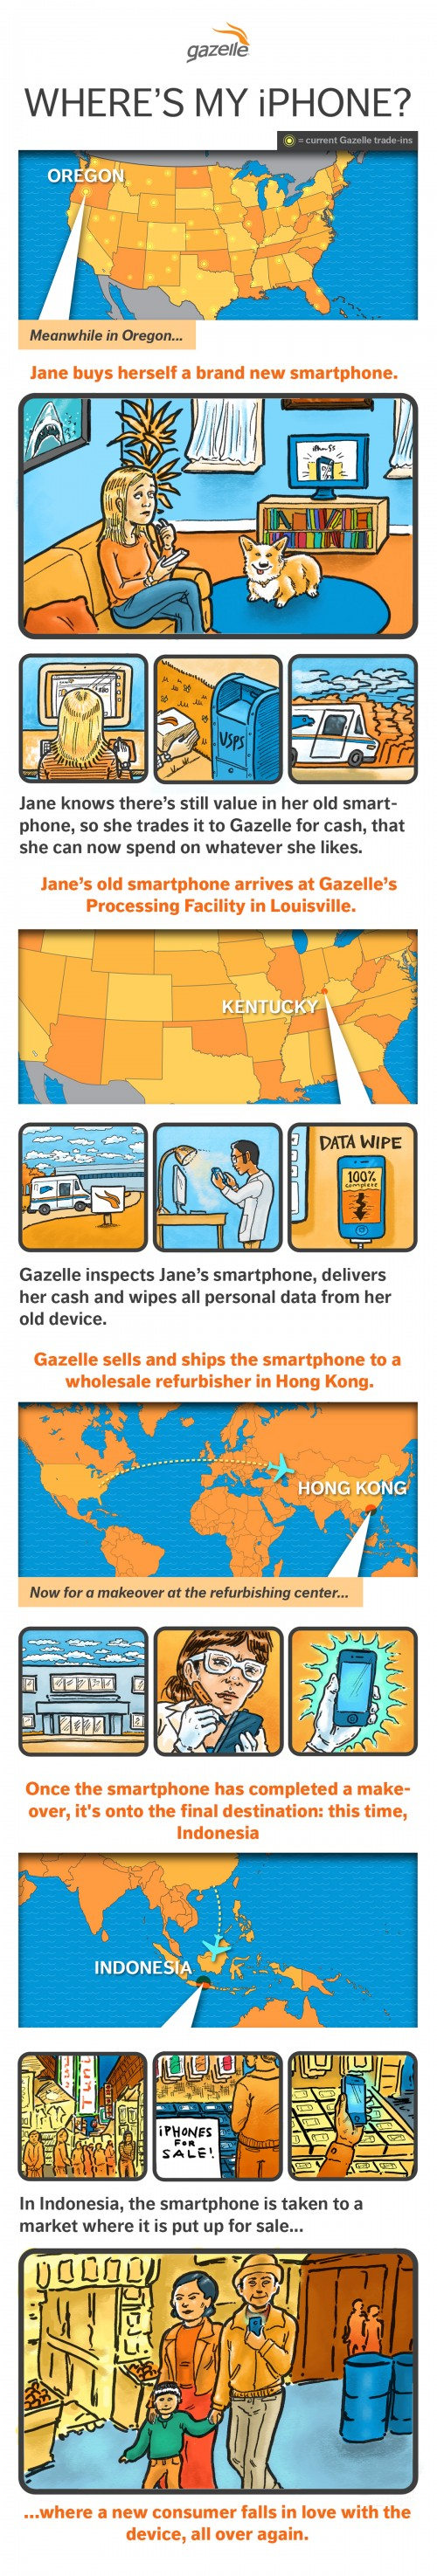 Gazelle_Wheres my Phone infographic (1)